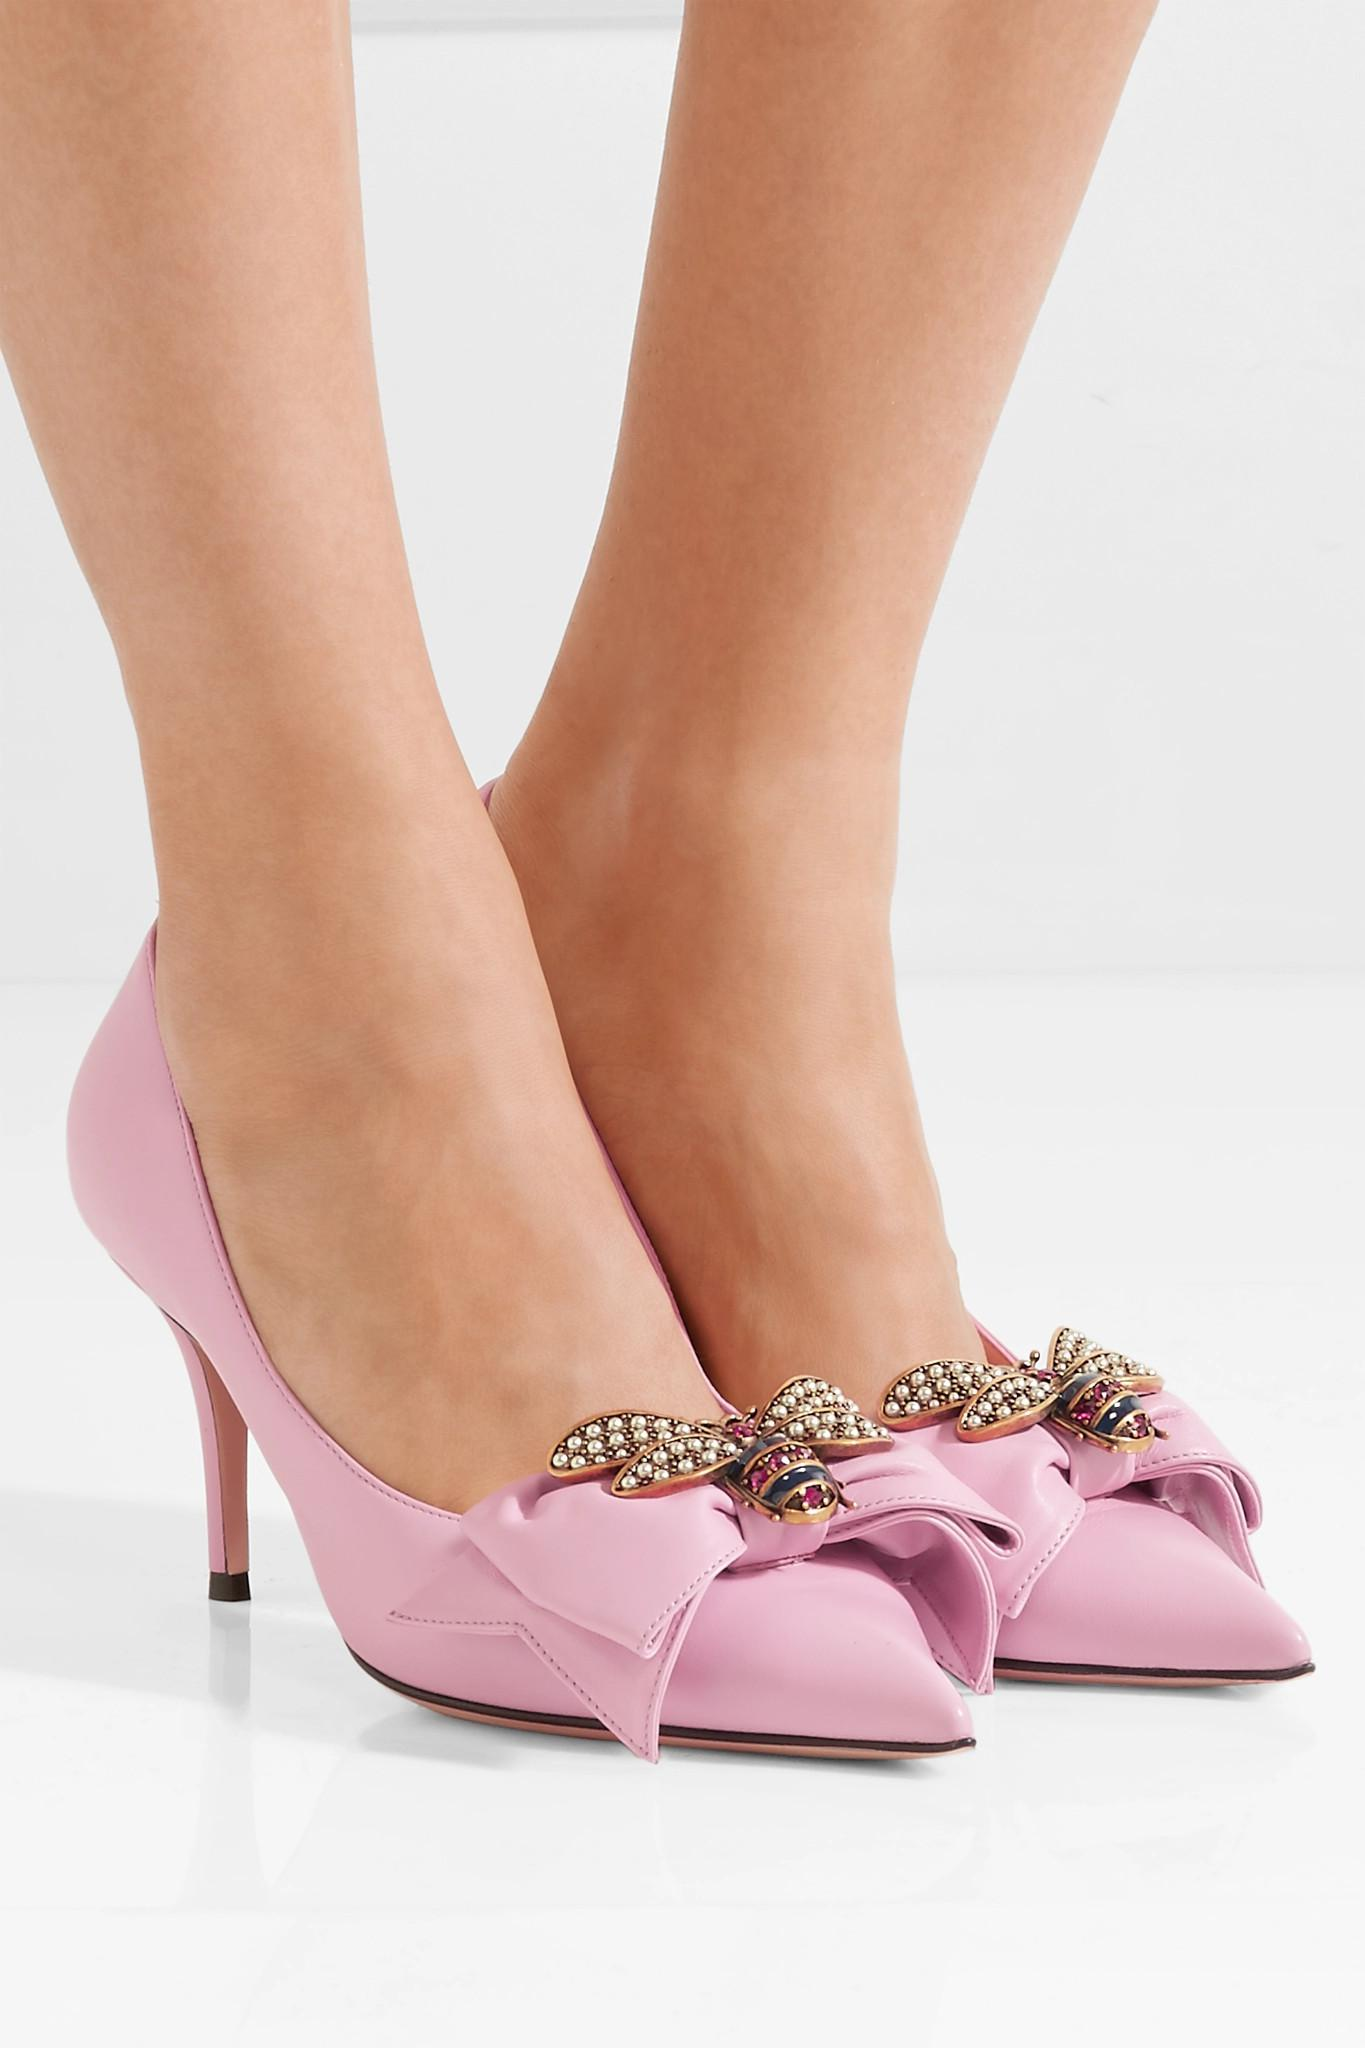 4cab5149ee96 Gucci - Pink Queen Margaret Embellished Leather Pumps - Lyst. View  fullscreen